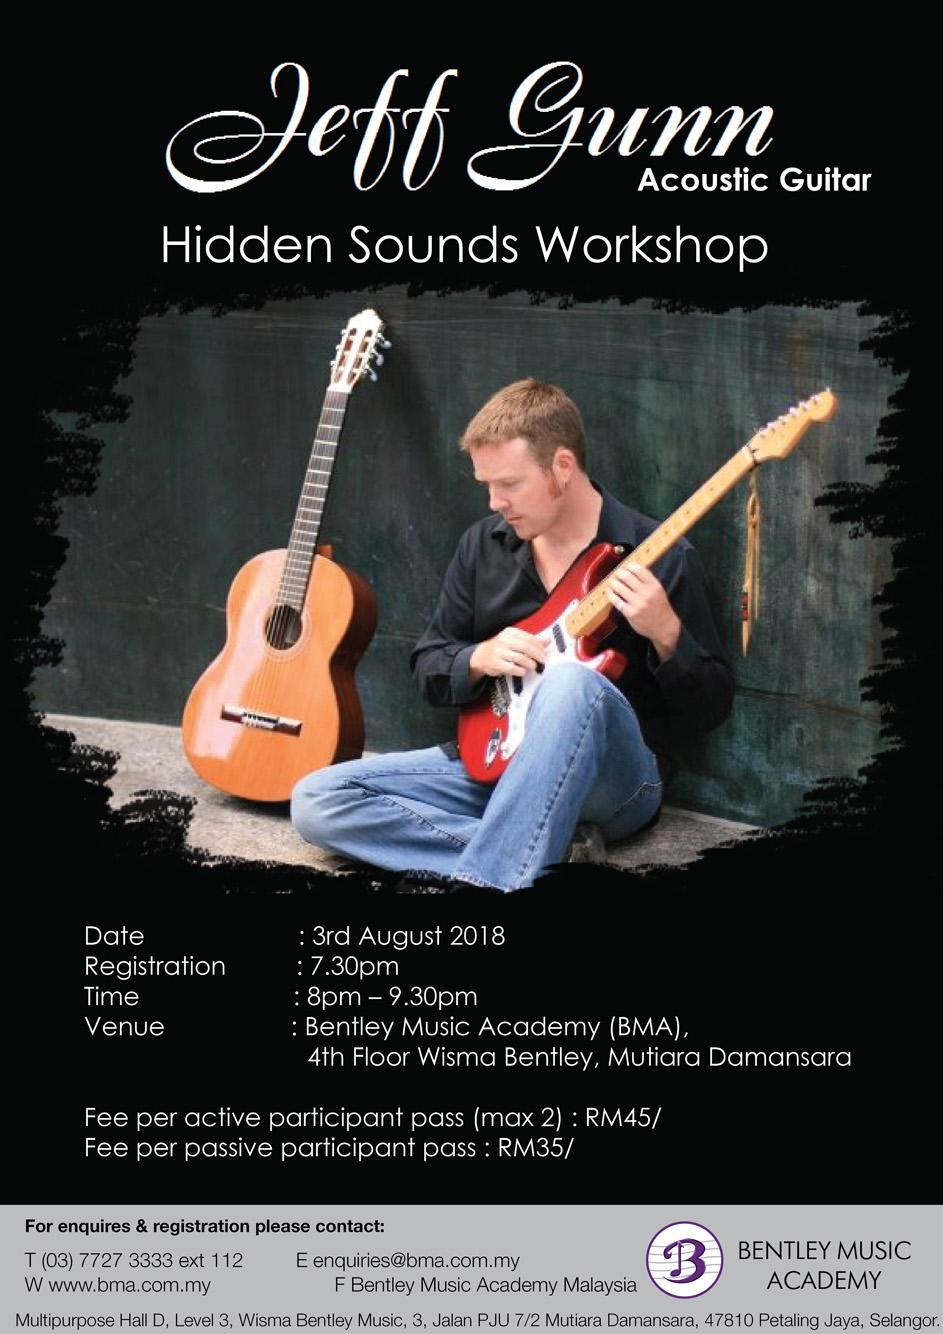 Jeff Gunn : Acoustic Guitar Hidden Sounds Workshop